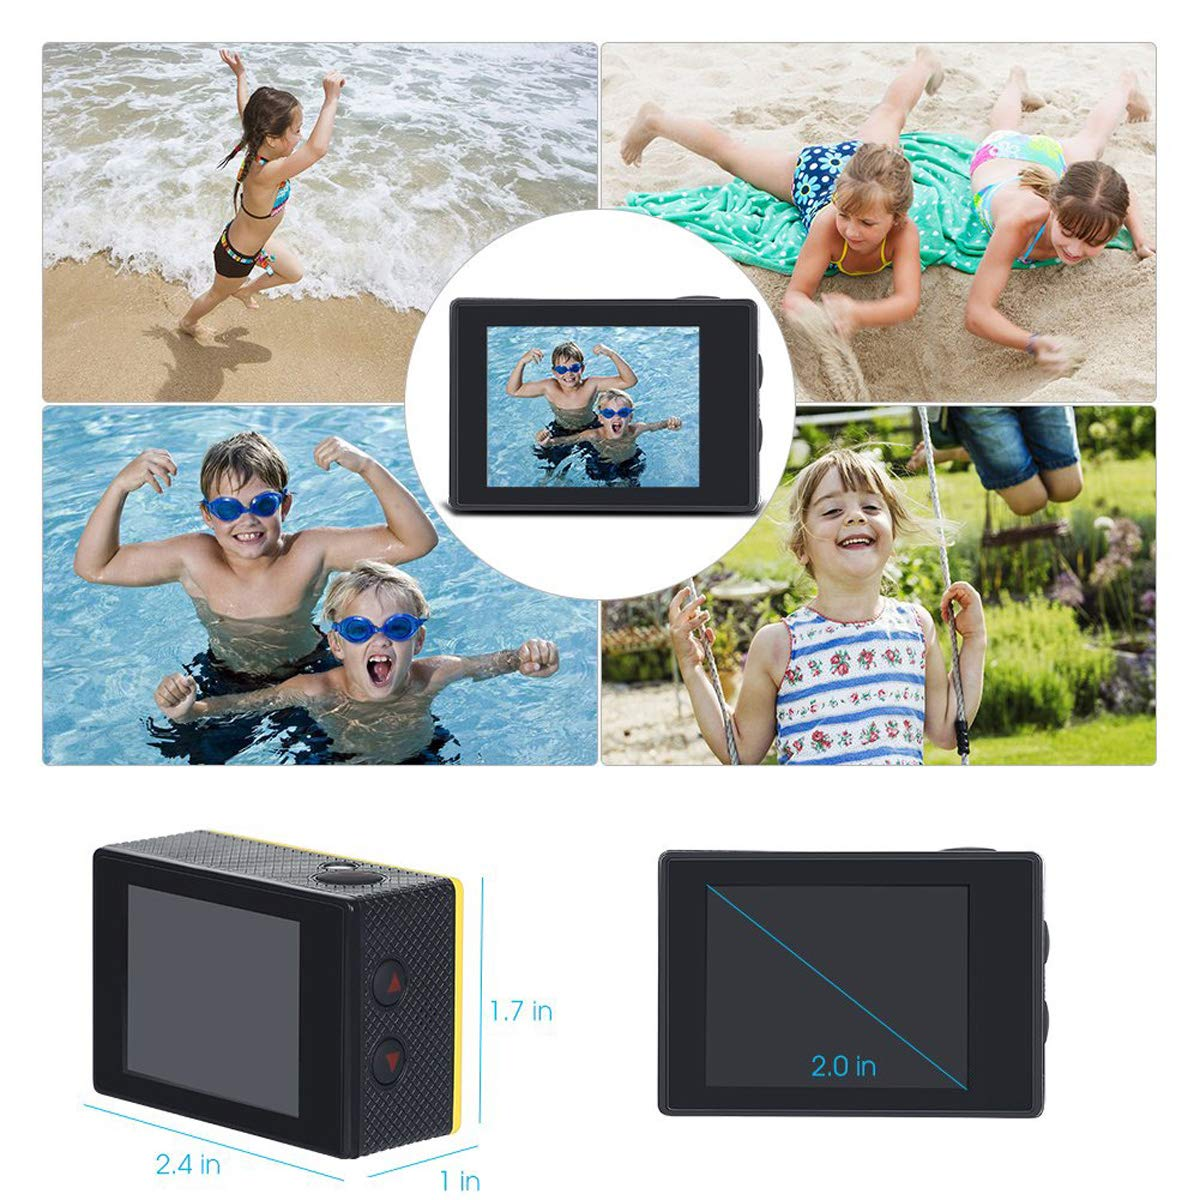 Nesolo Kids Digital Camera, Waterproof Camera for Kids Toy for Boy Girls Holiday Birthday Gift with 2.0 Inch LCD Display by Nesolo (Image #6)